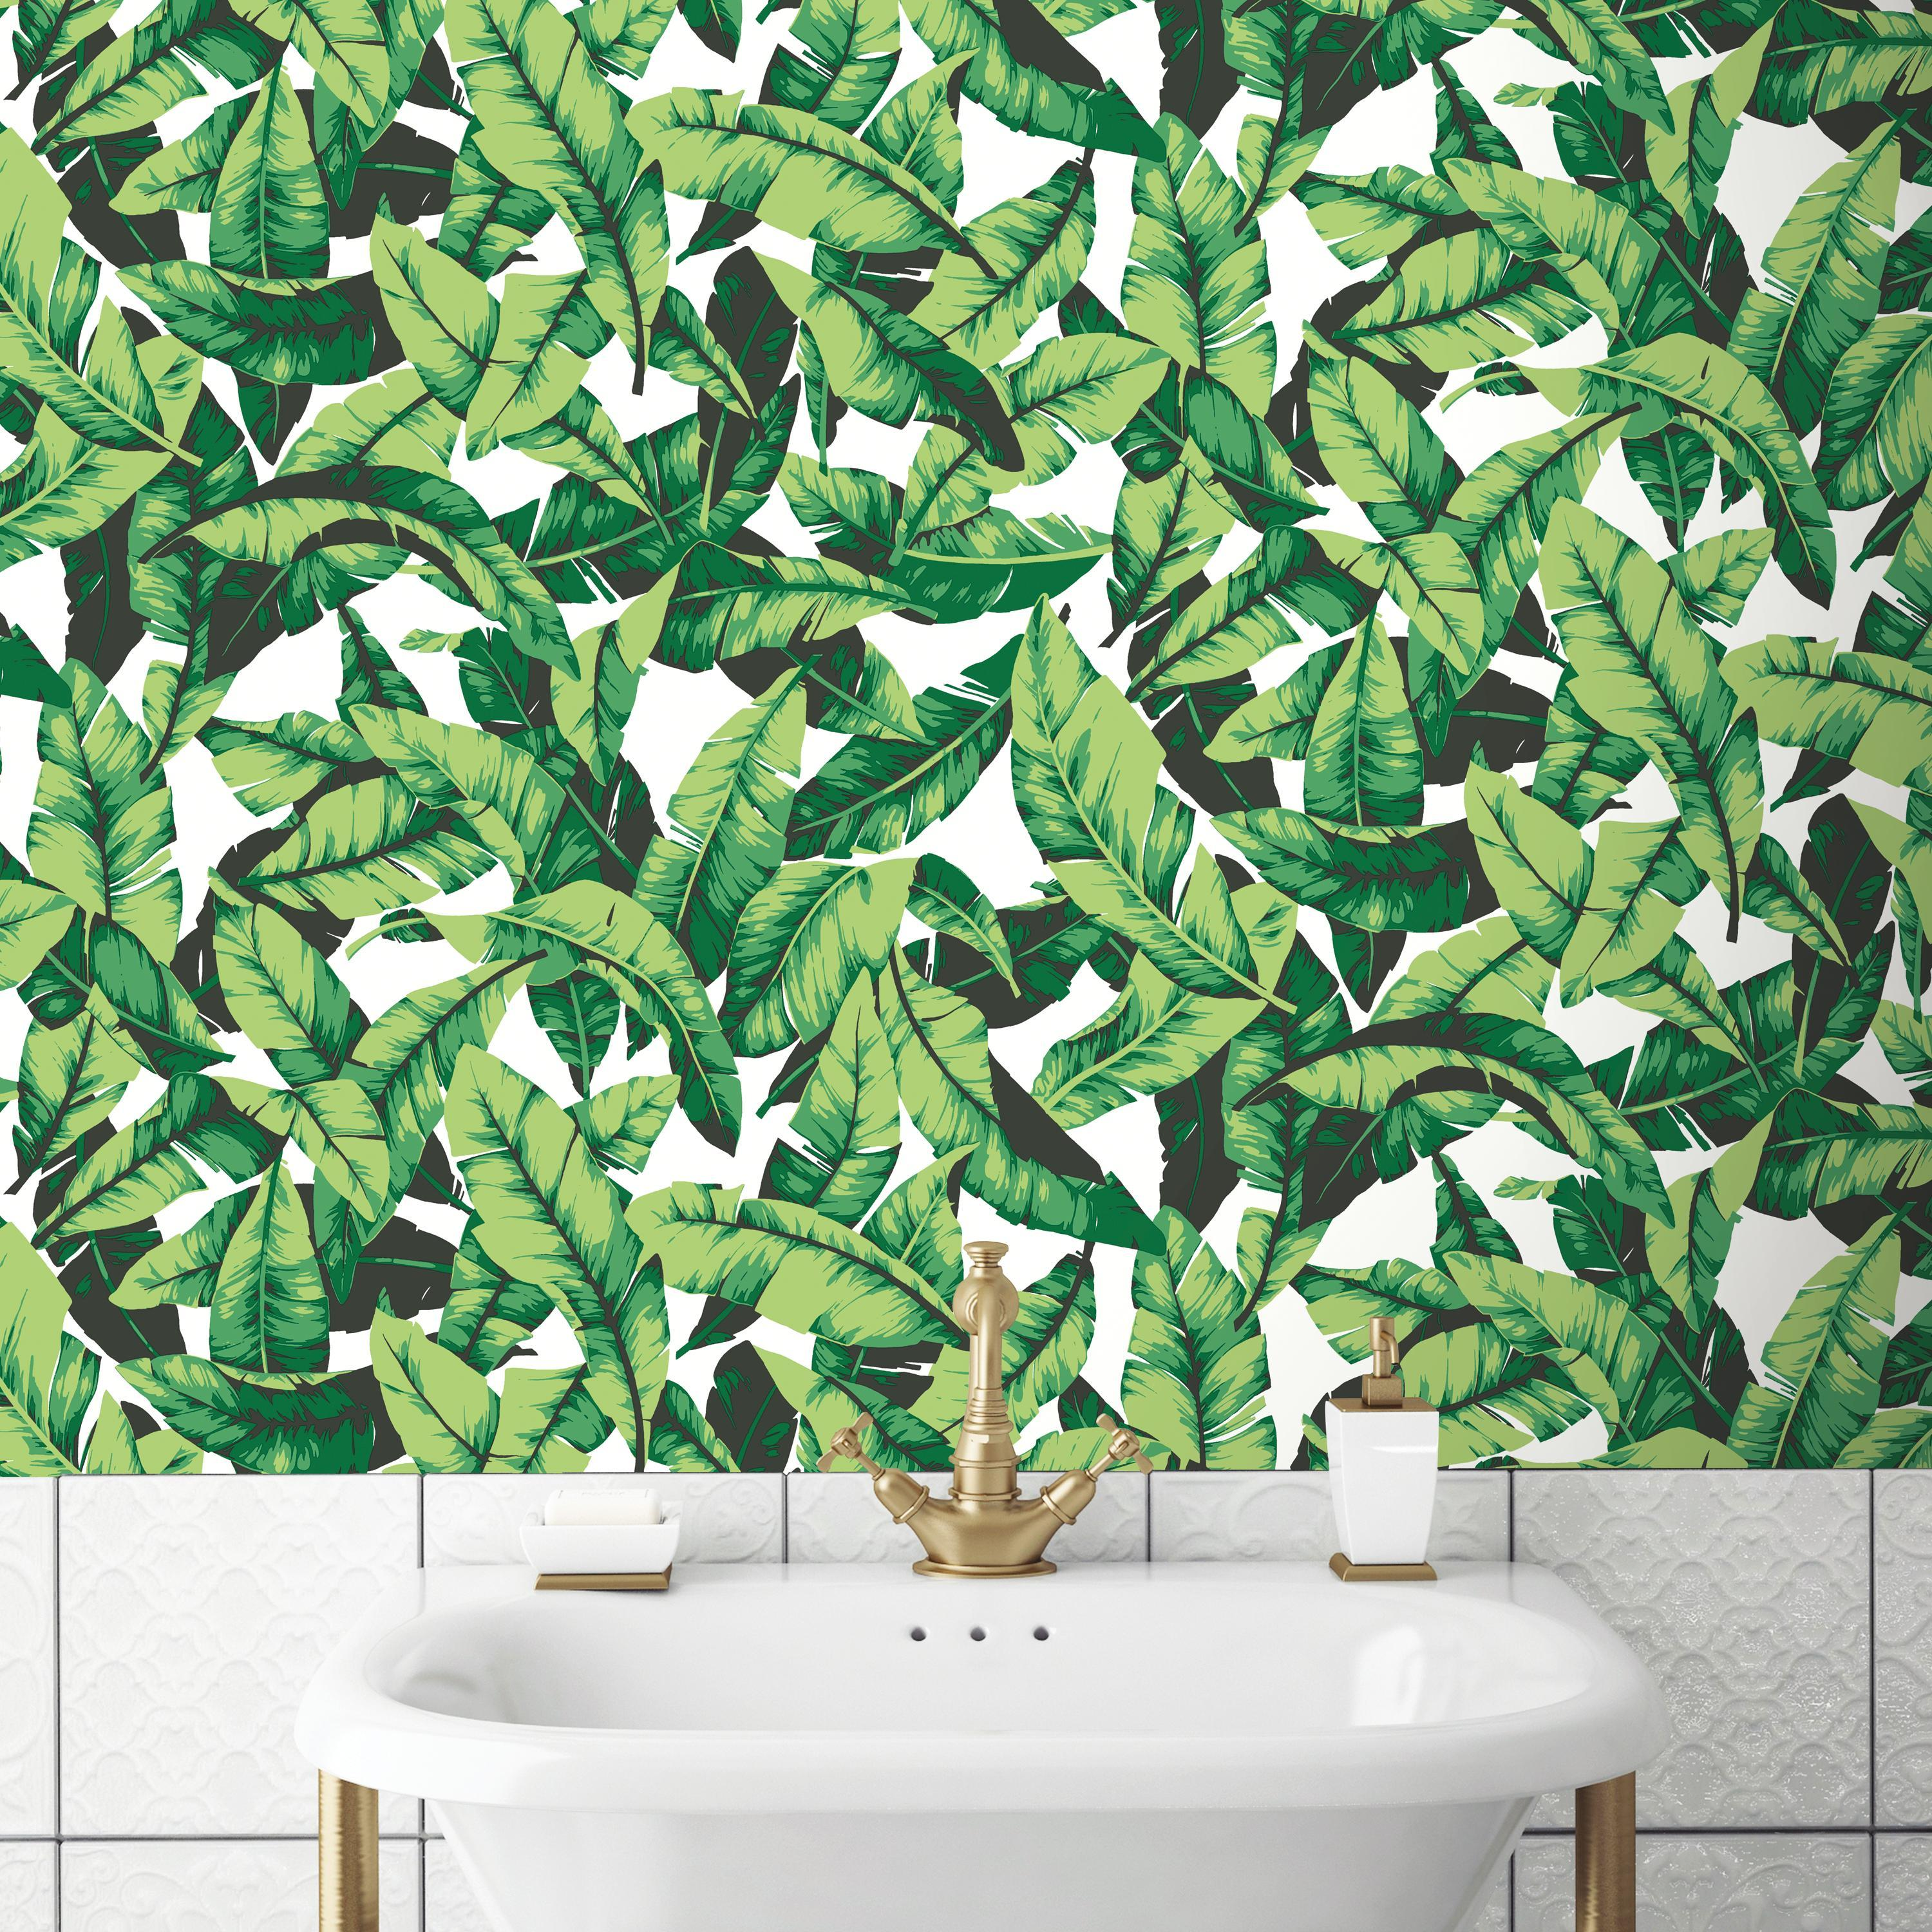 RoomMates Palm Leaf Peel & Stick Wallpaper